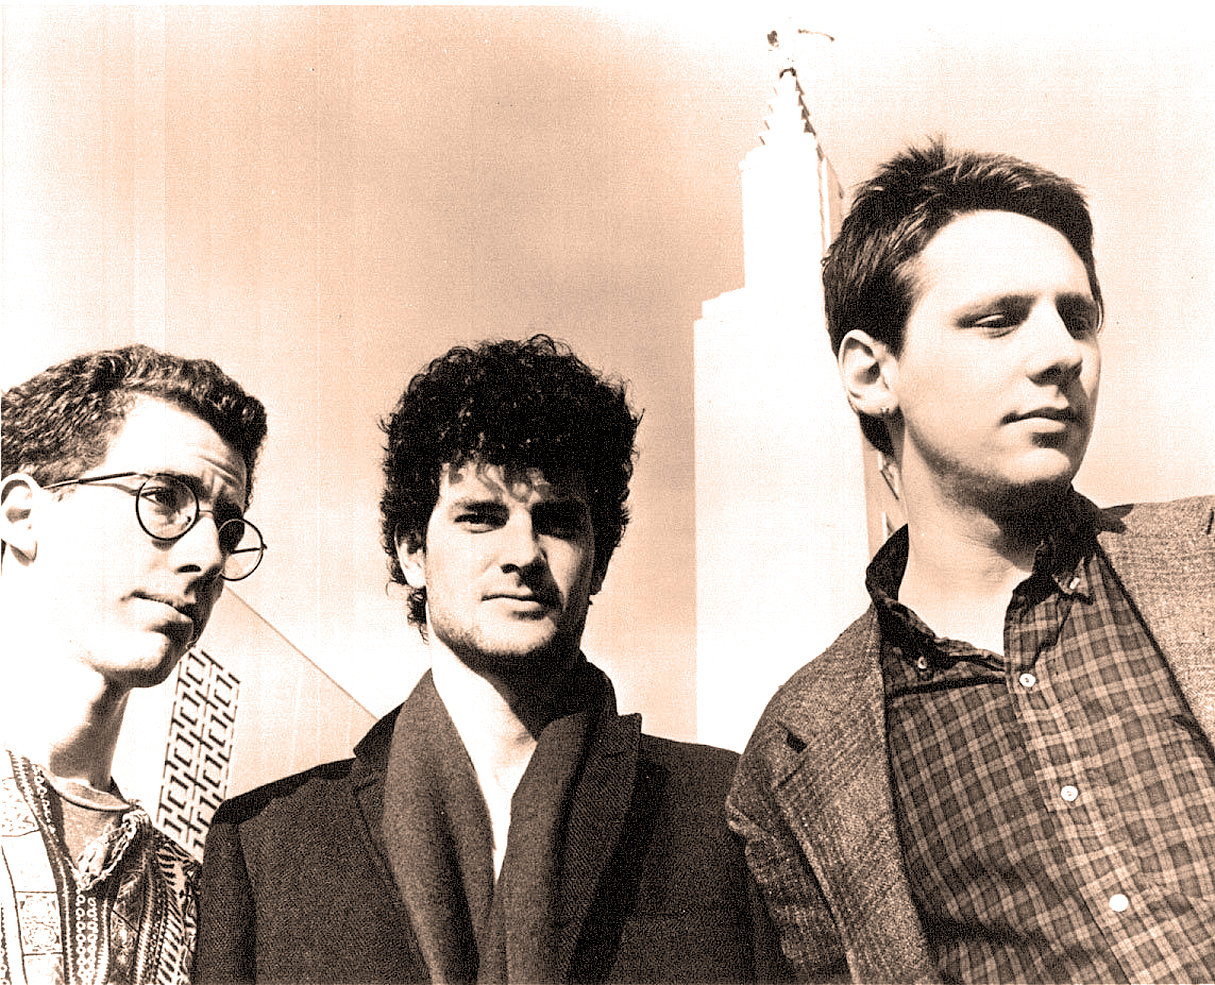 100 Flowers - in session at KPFK - 1983